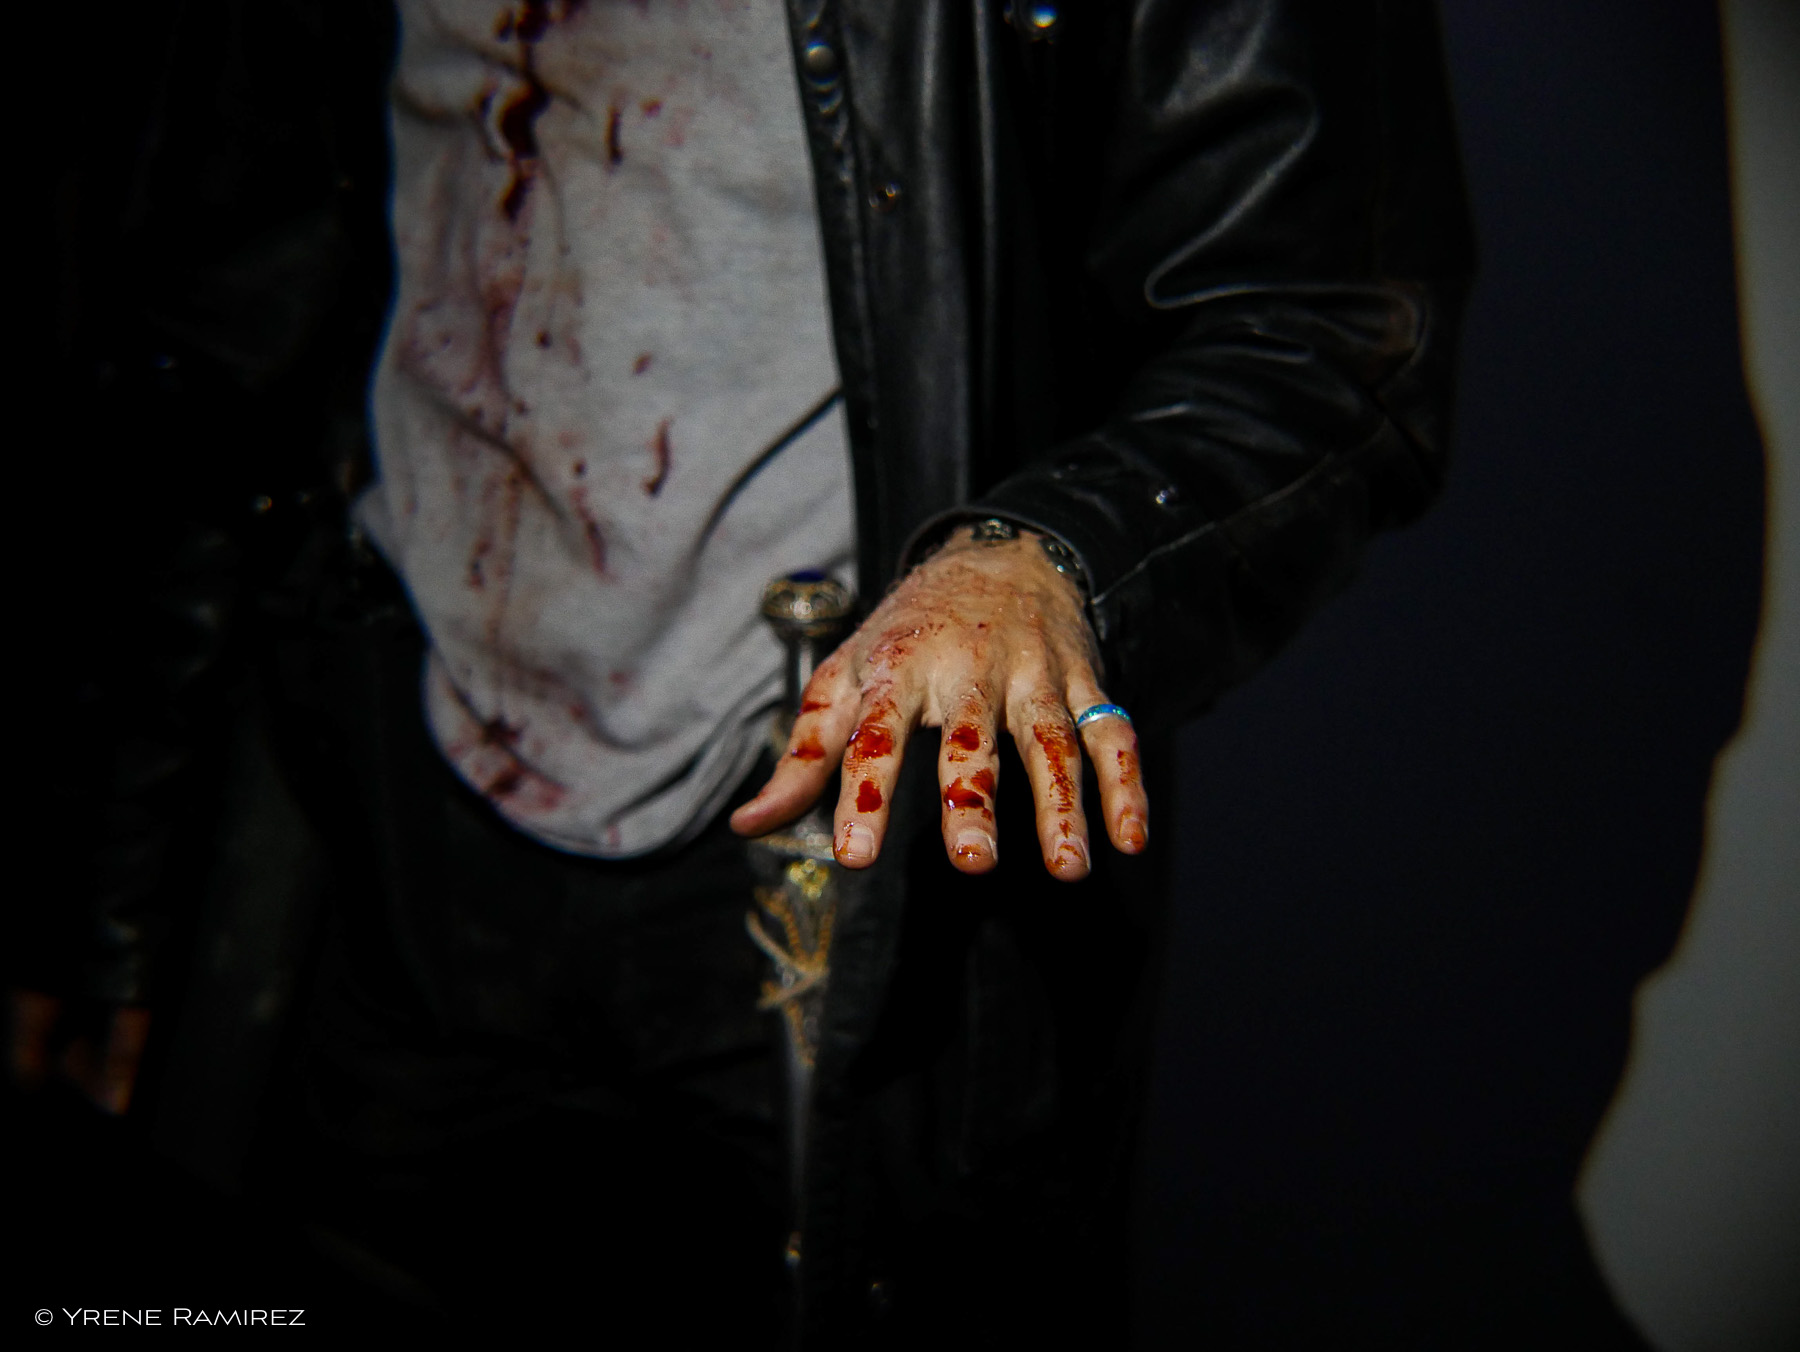 Harry's bloodied shirt and hands. Whoops, that ring shouldn't be there!